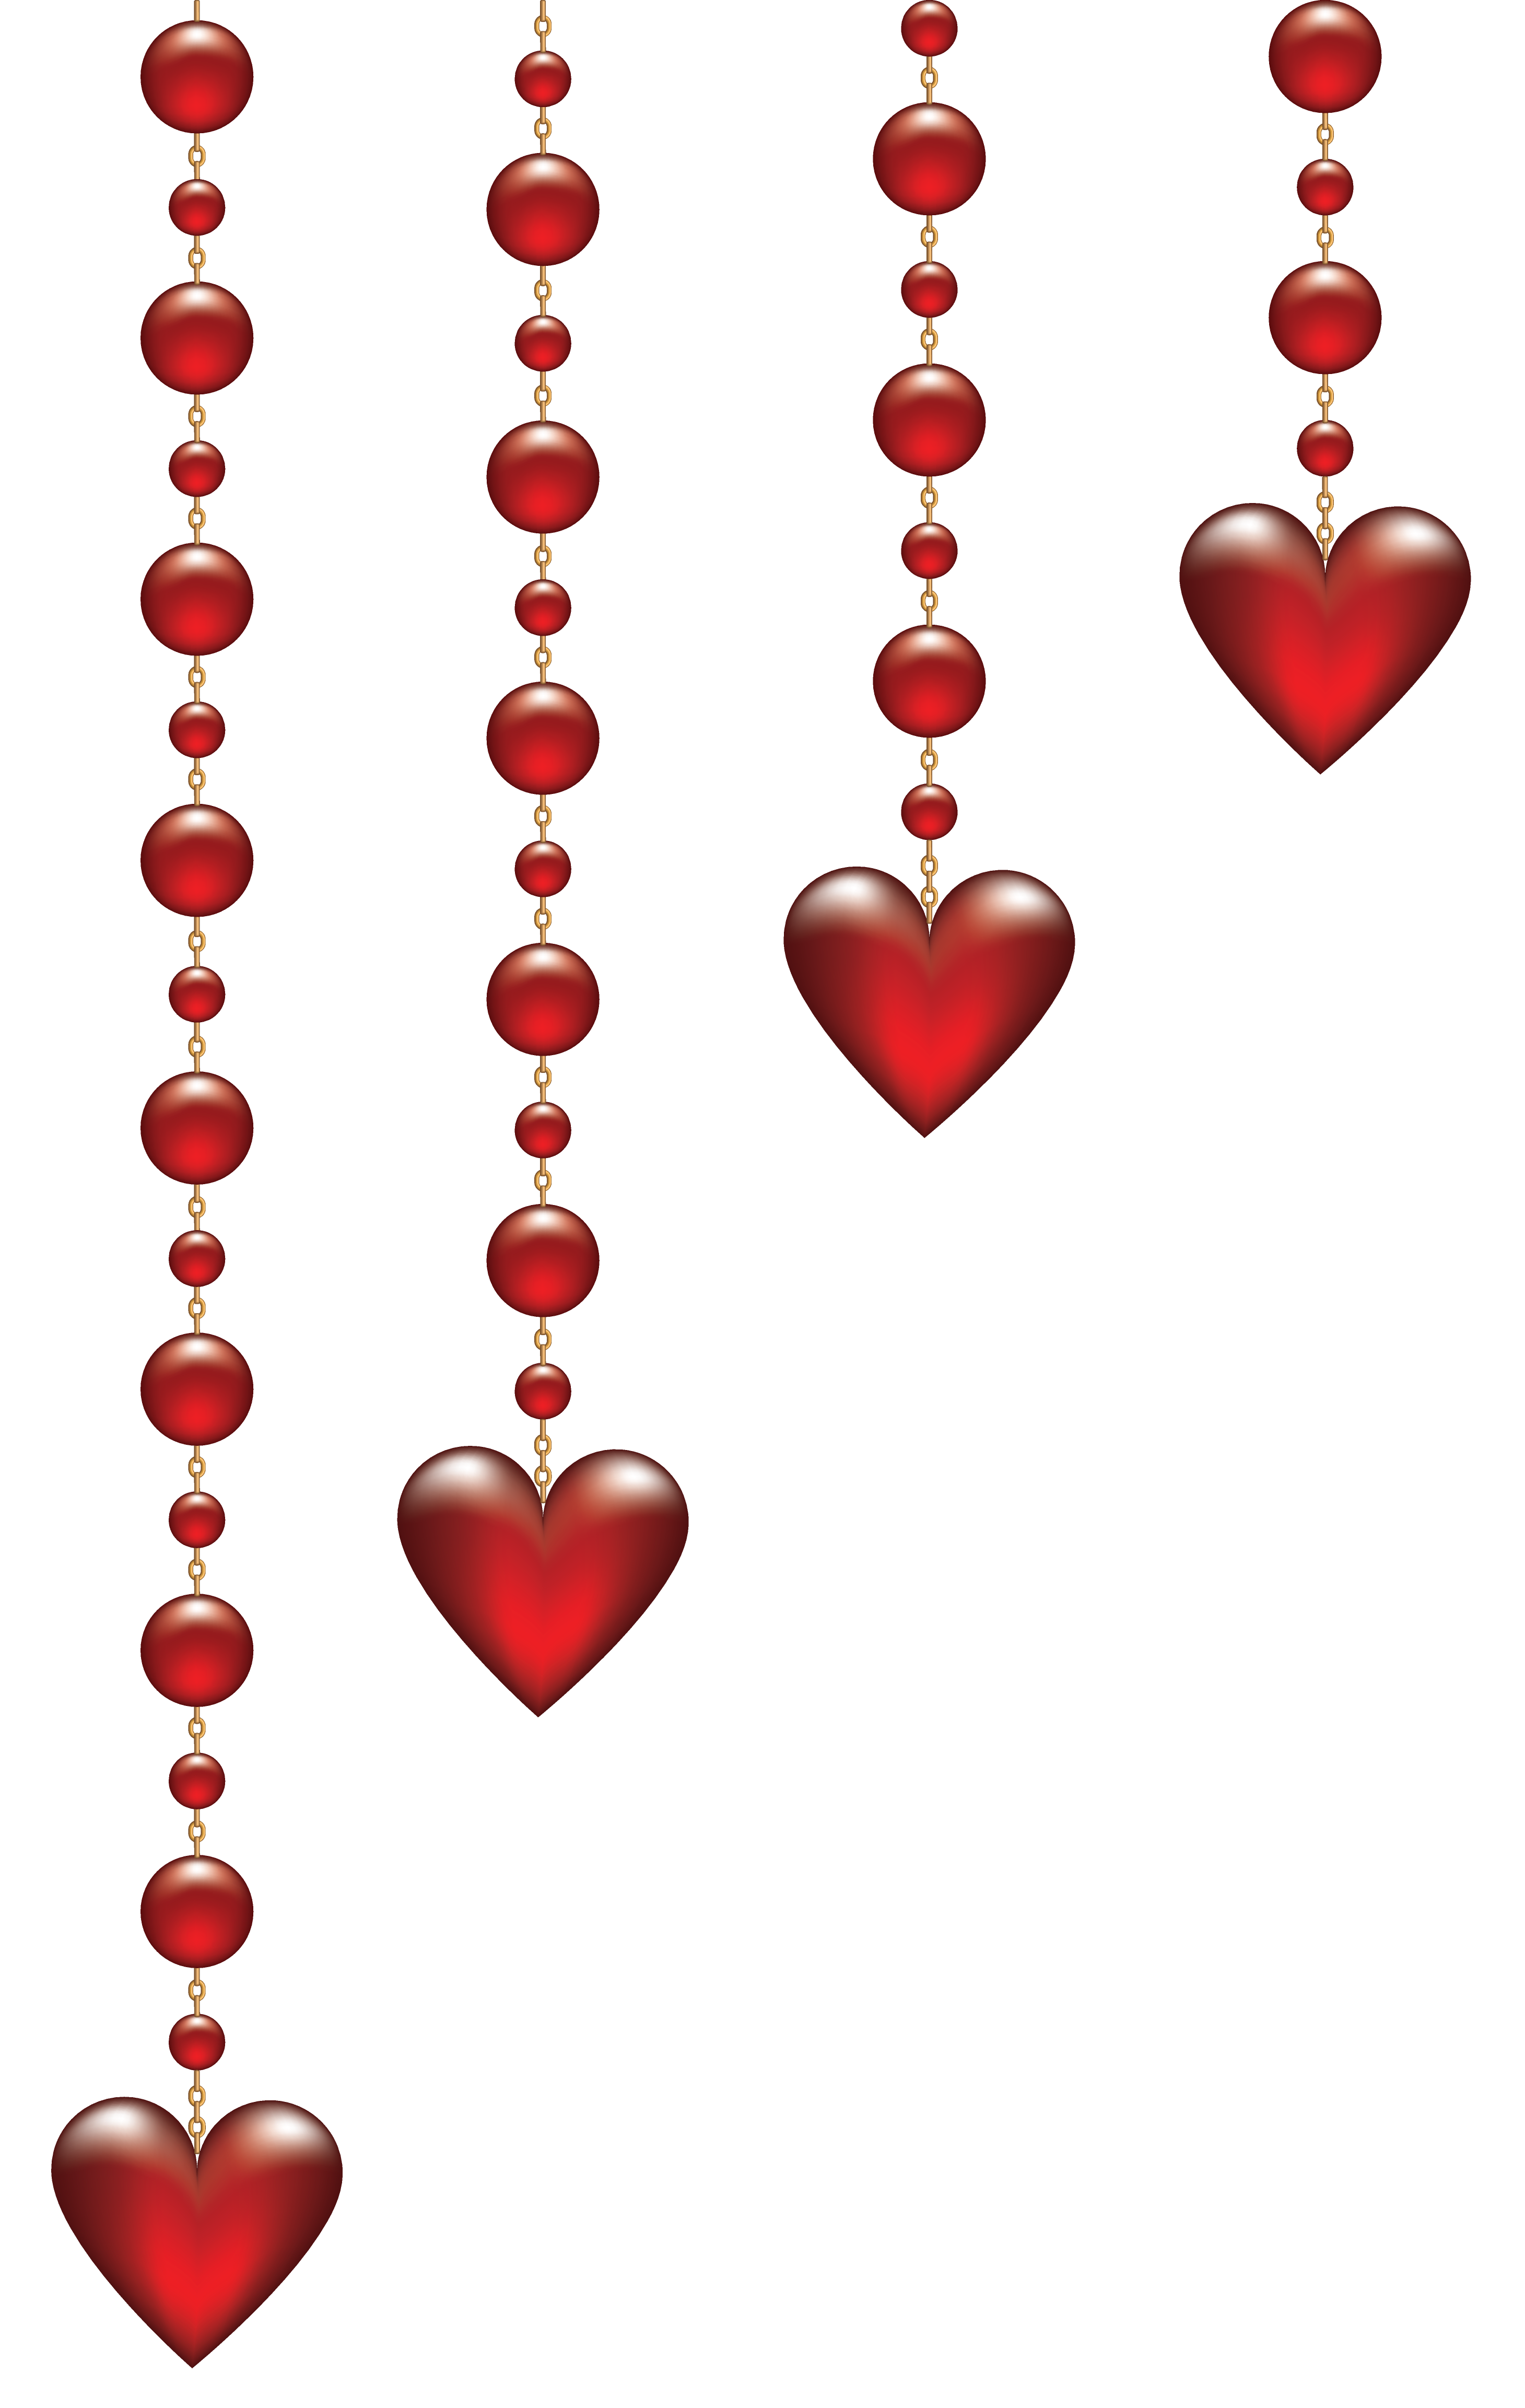 Hanging heart clipart image black and white Transparent Valentine Clipart image black and white